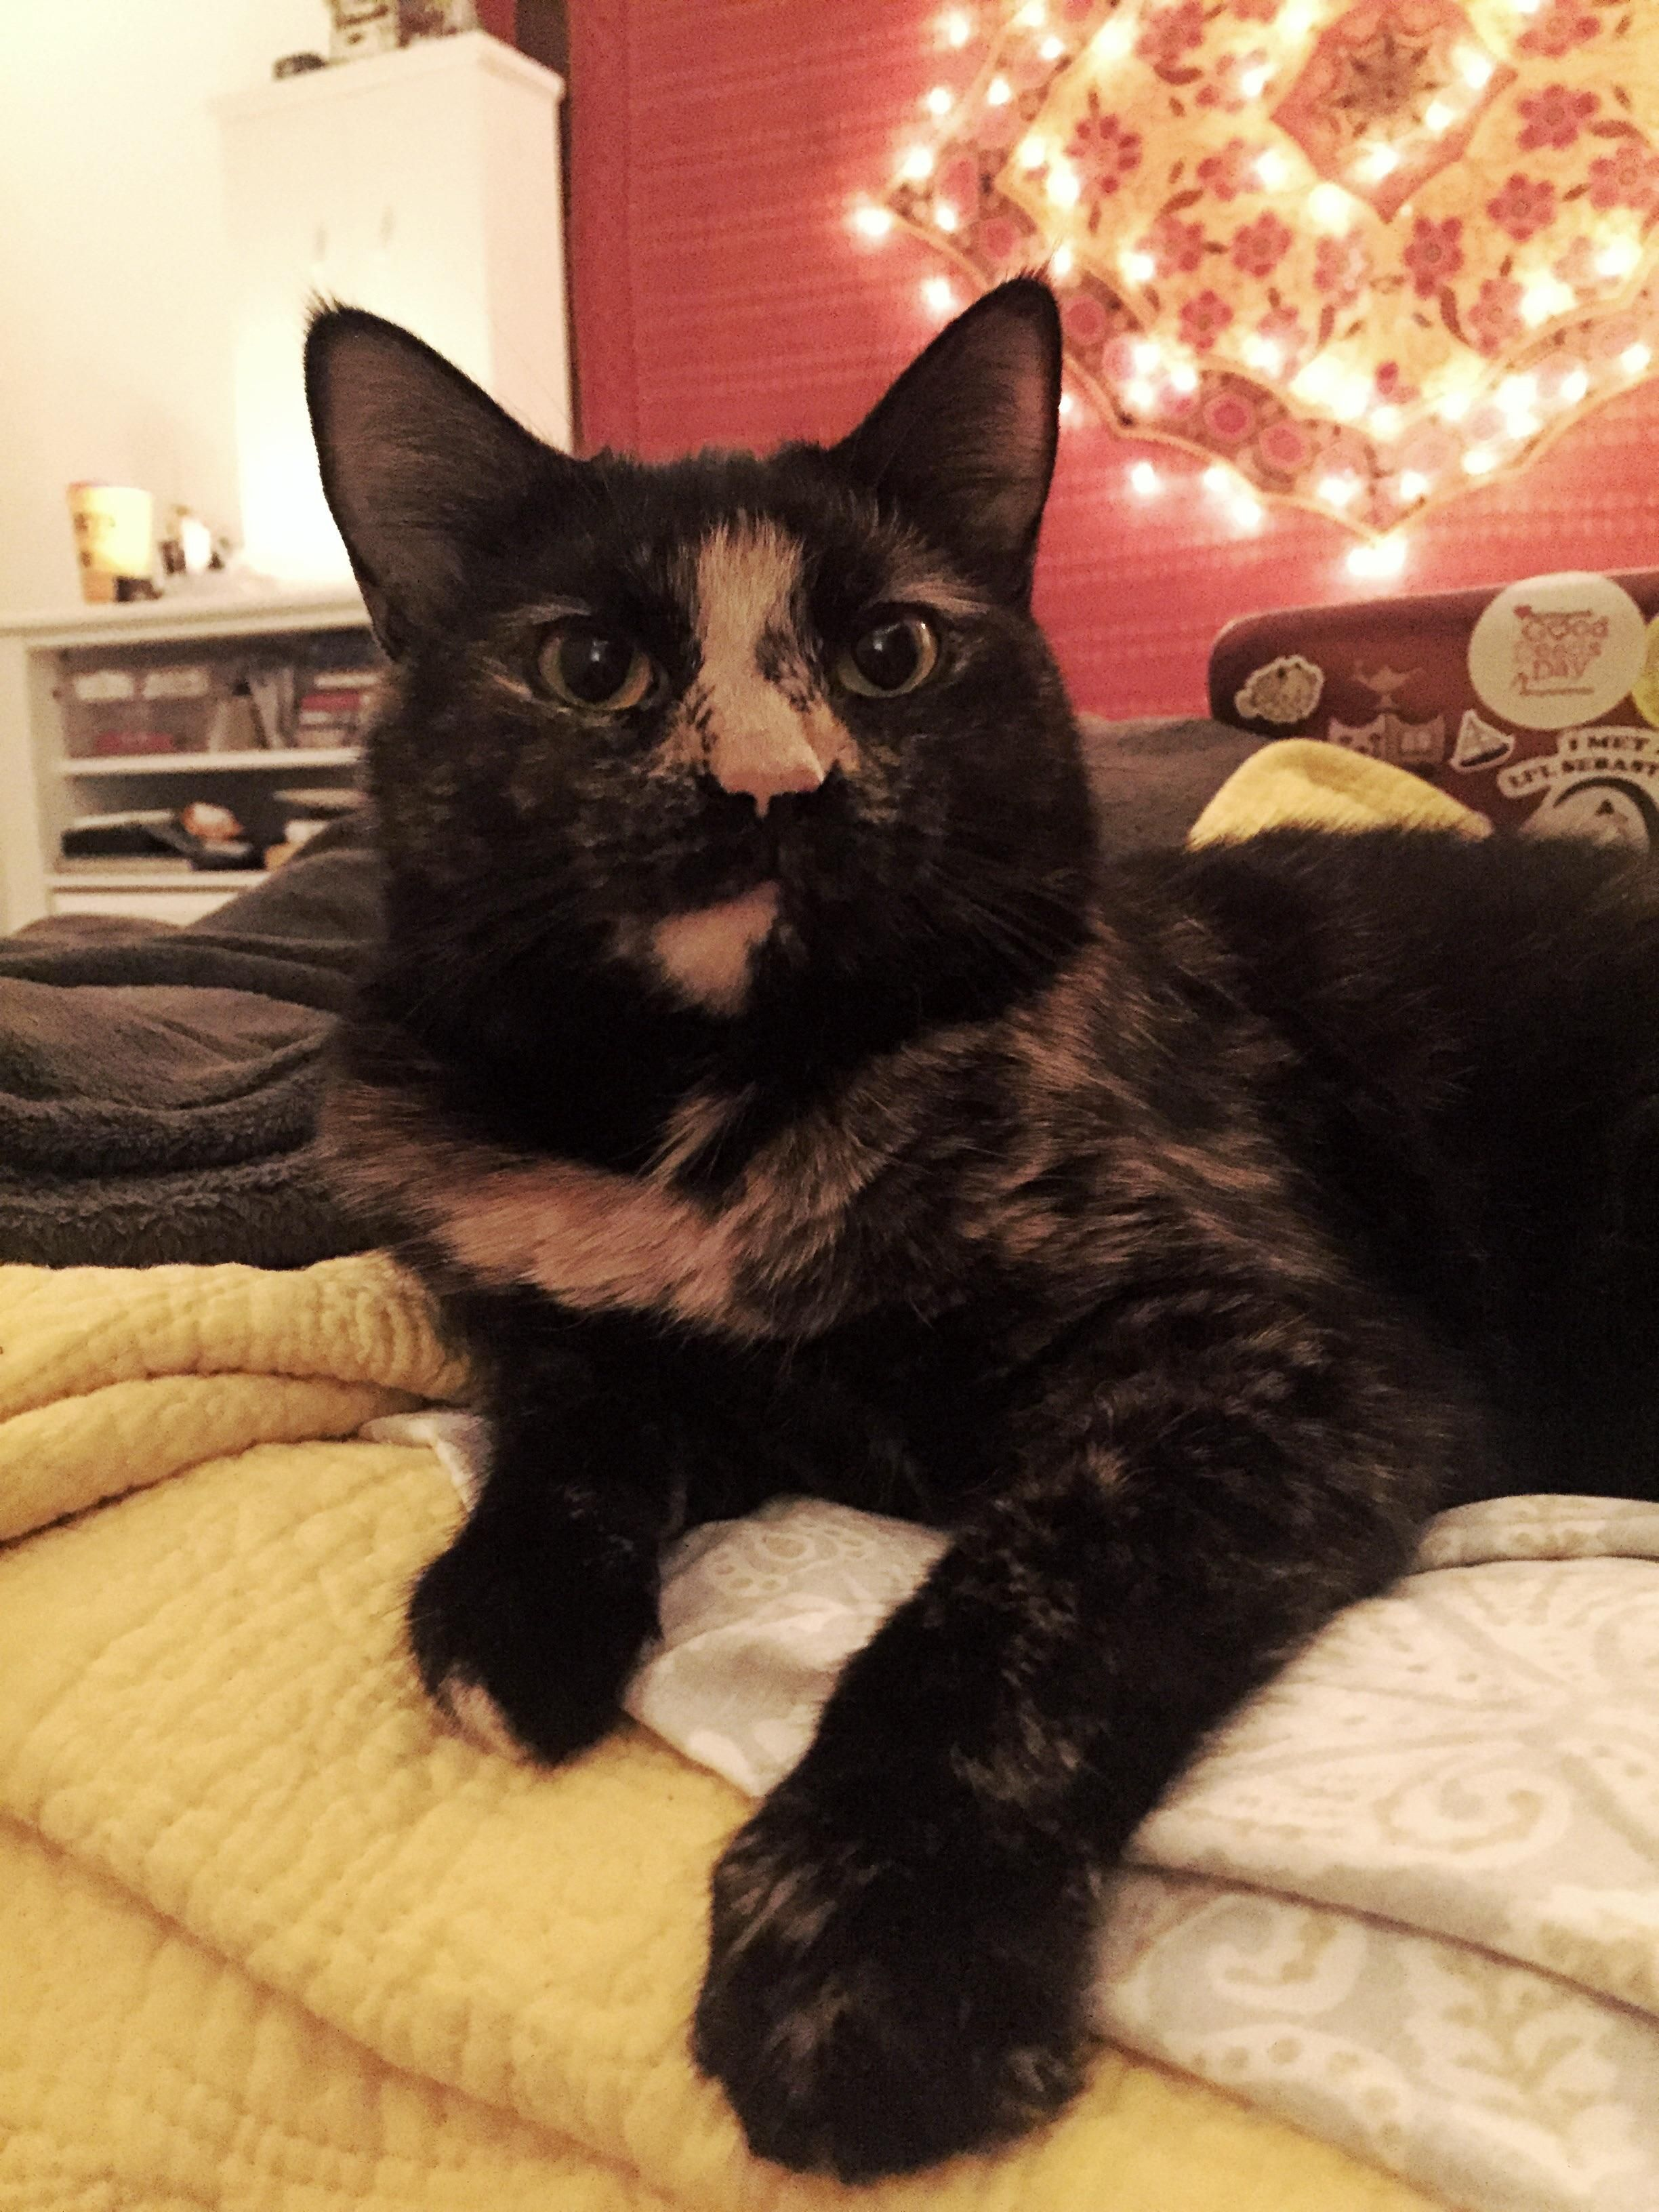 Meet Ino! I adopted this angel for free from Craigslist